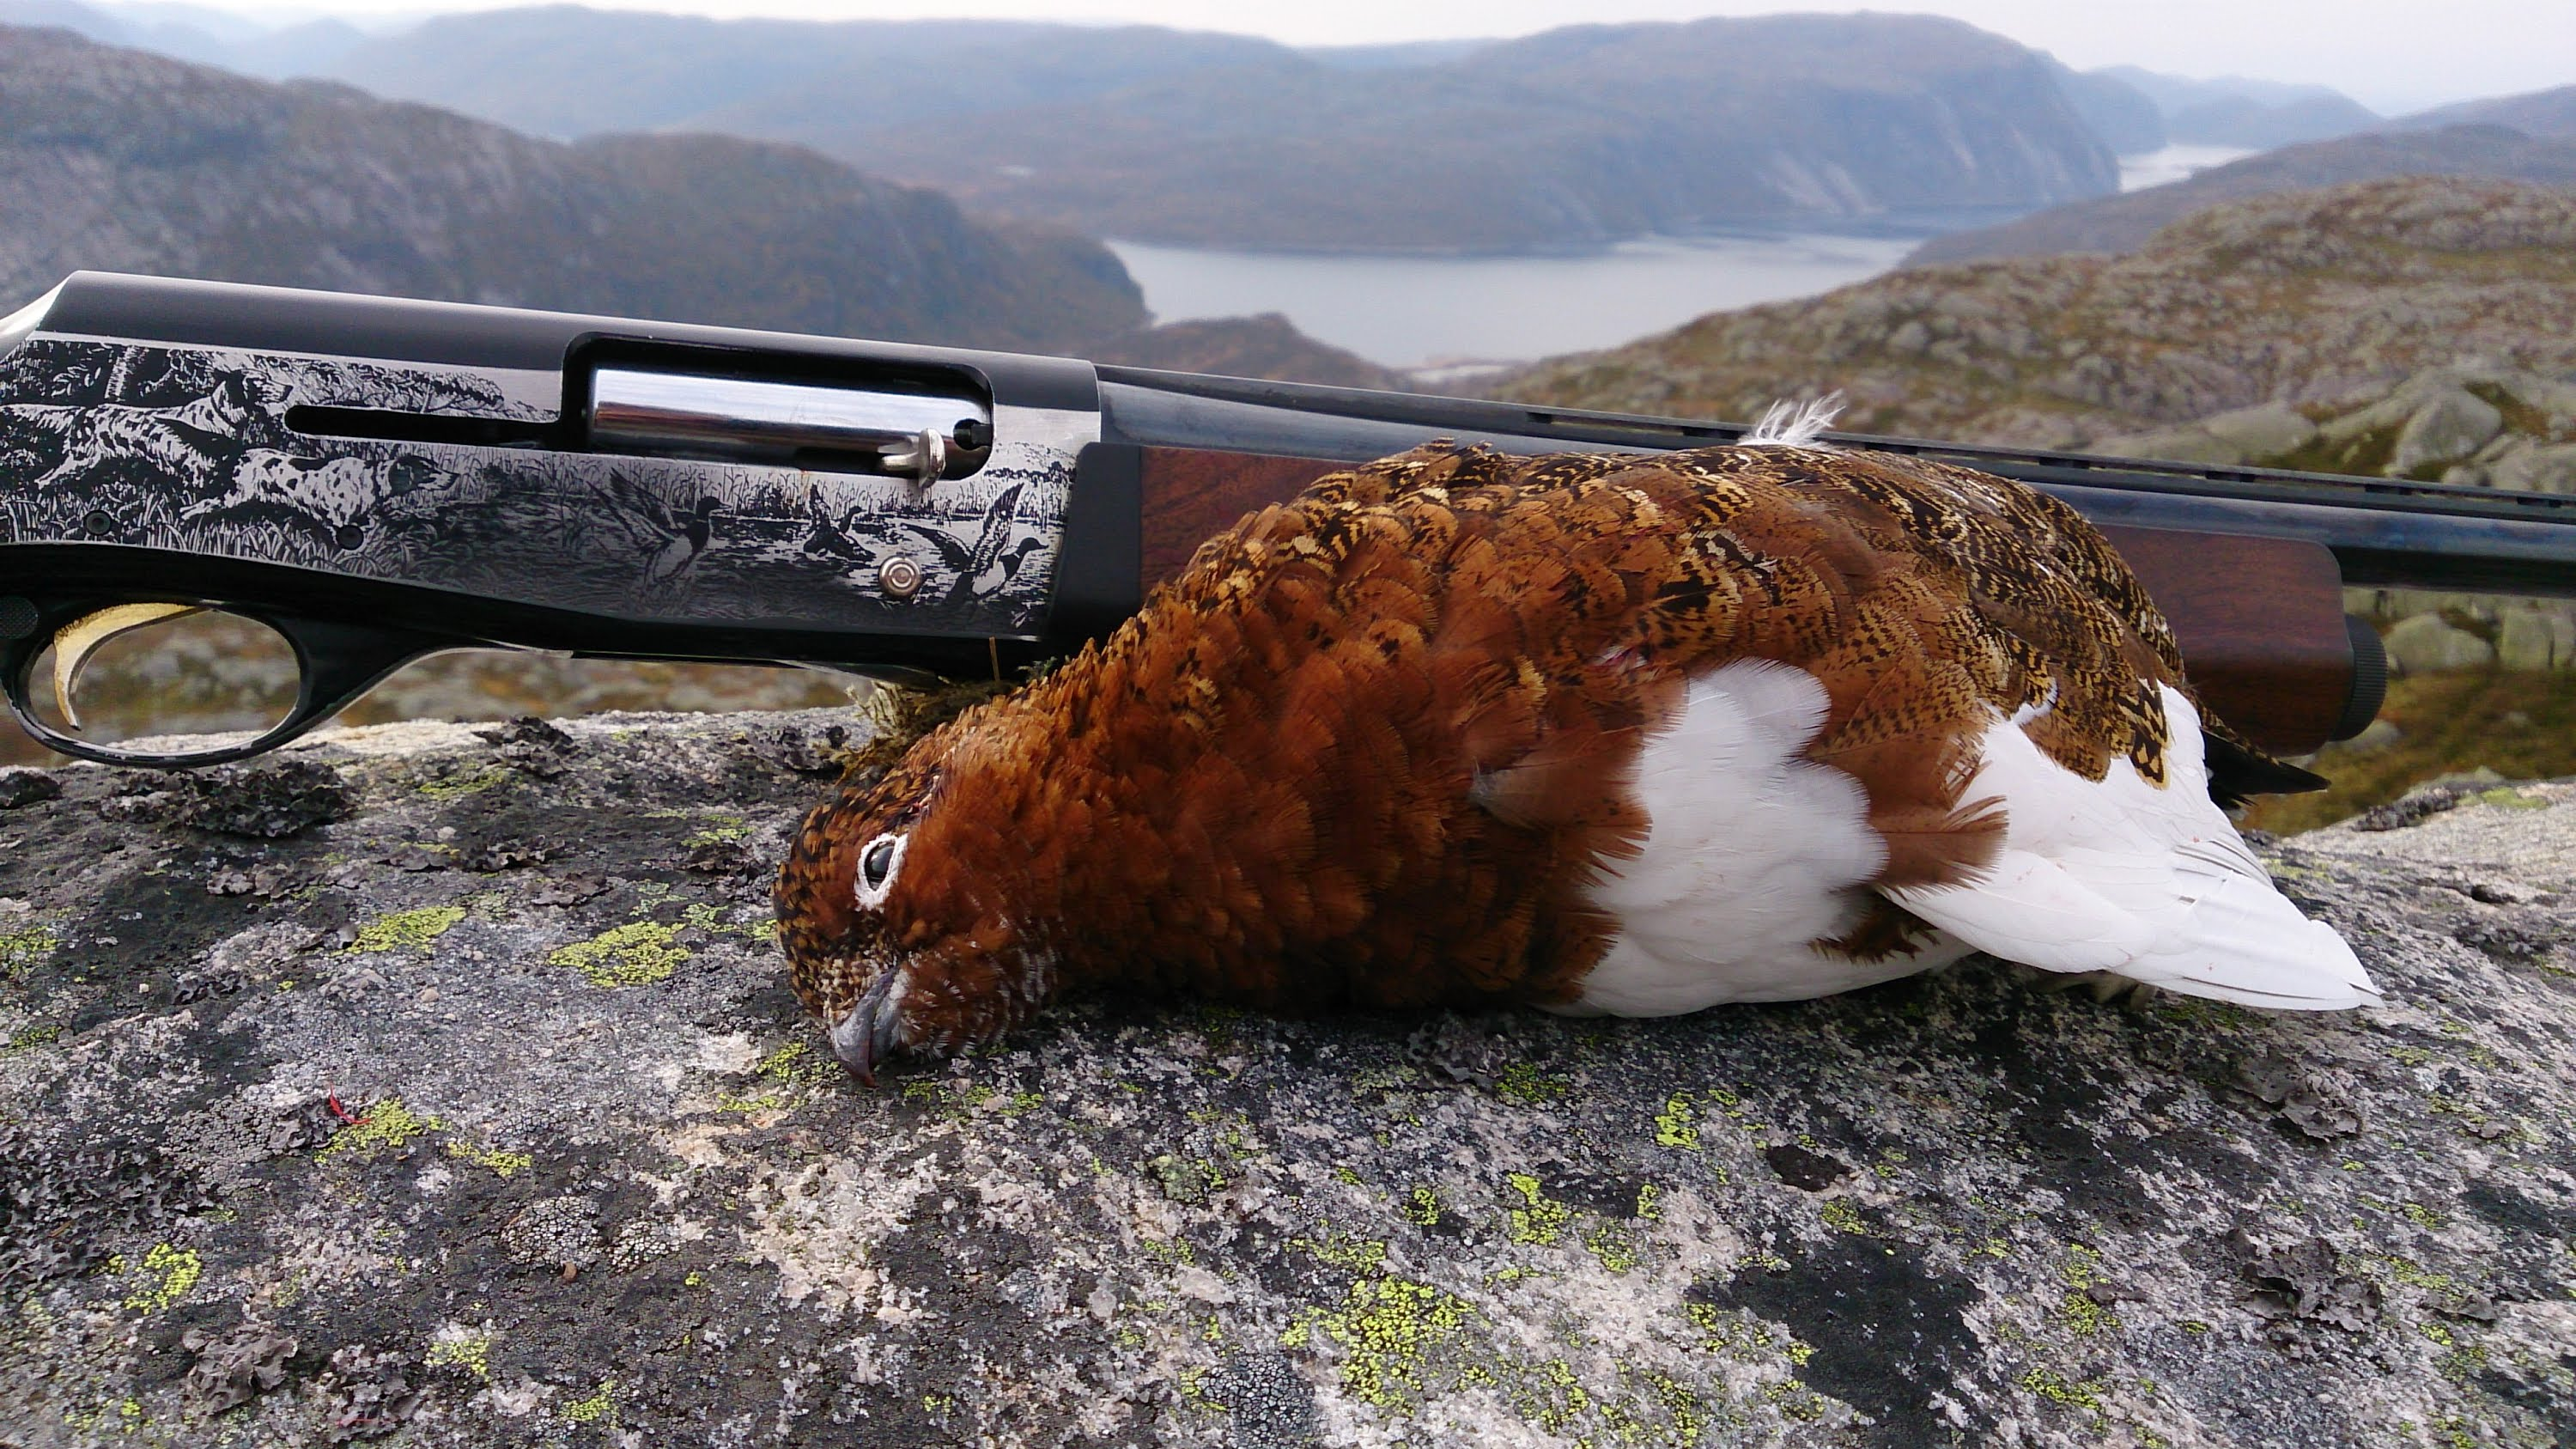 Rypejakt 2014 / Ptarmigan Hunting / Grouse Hunting 2014.